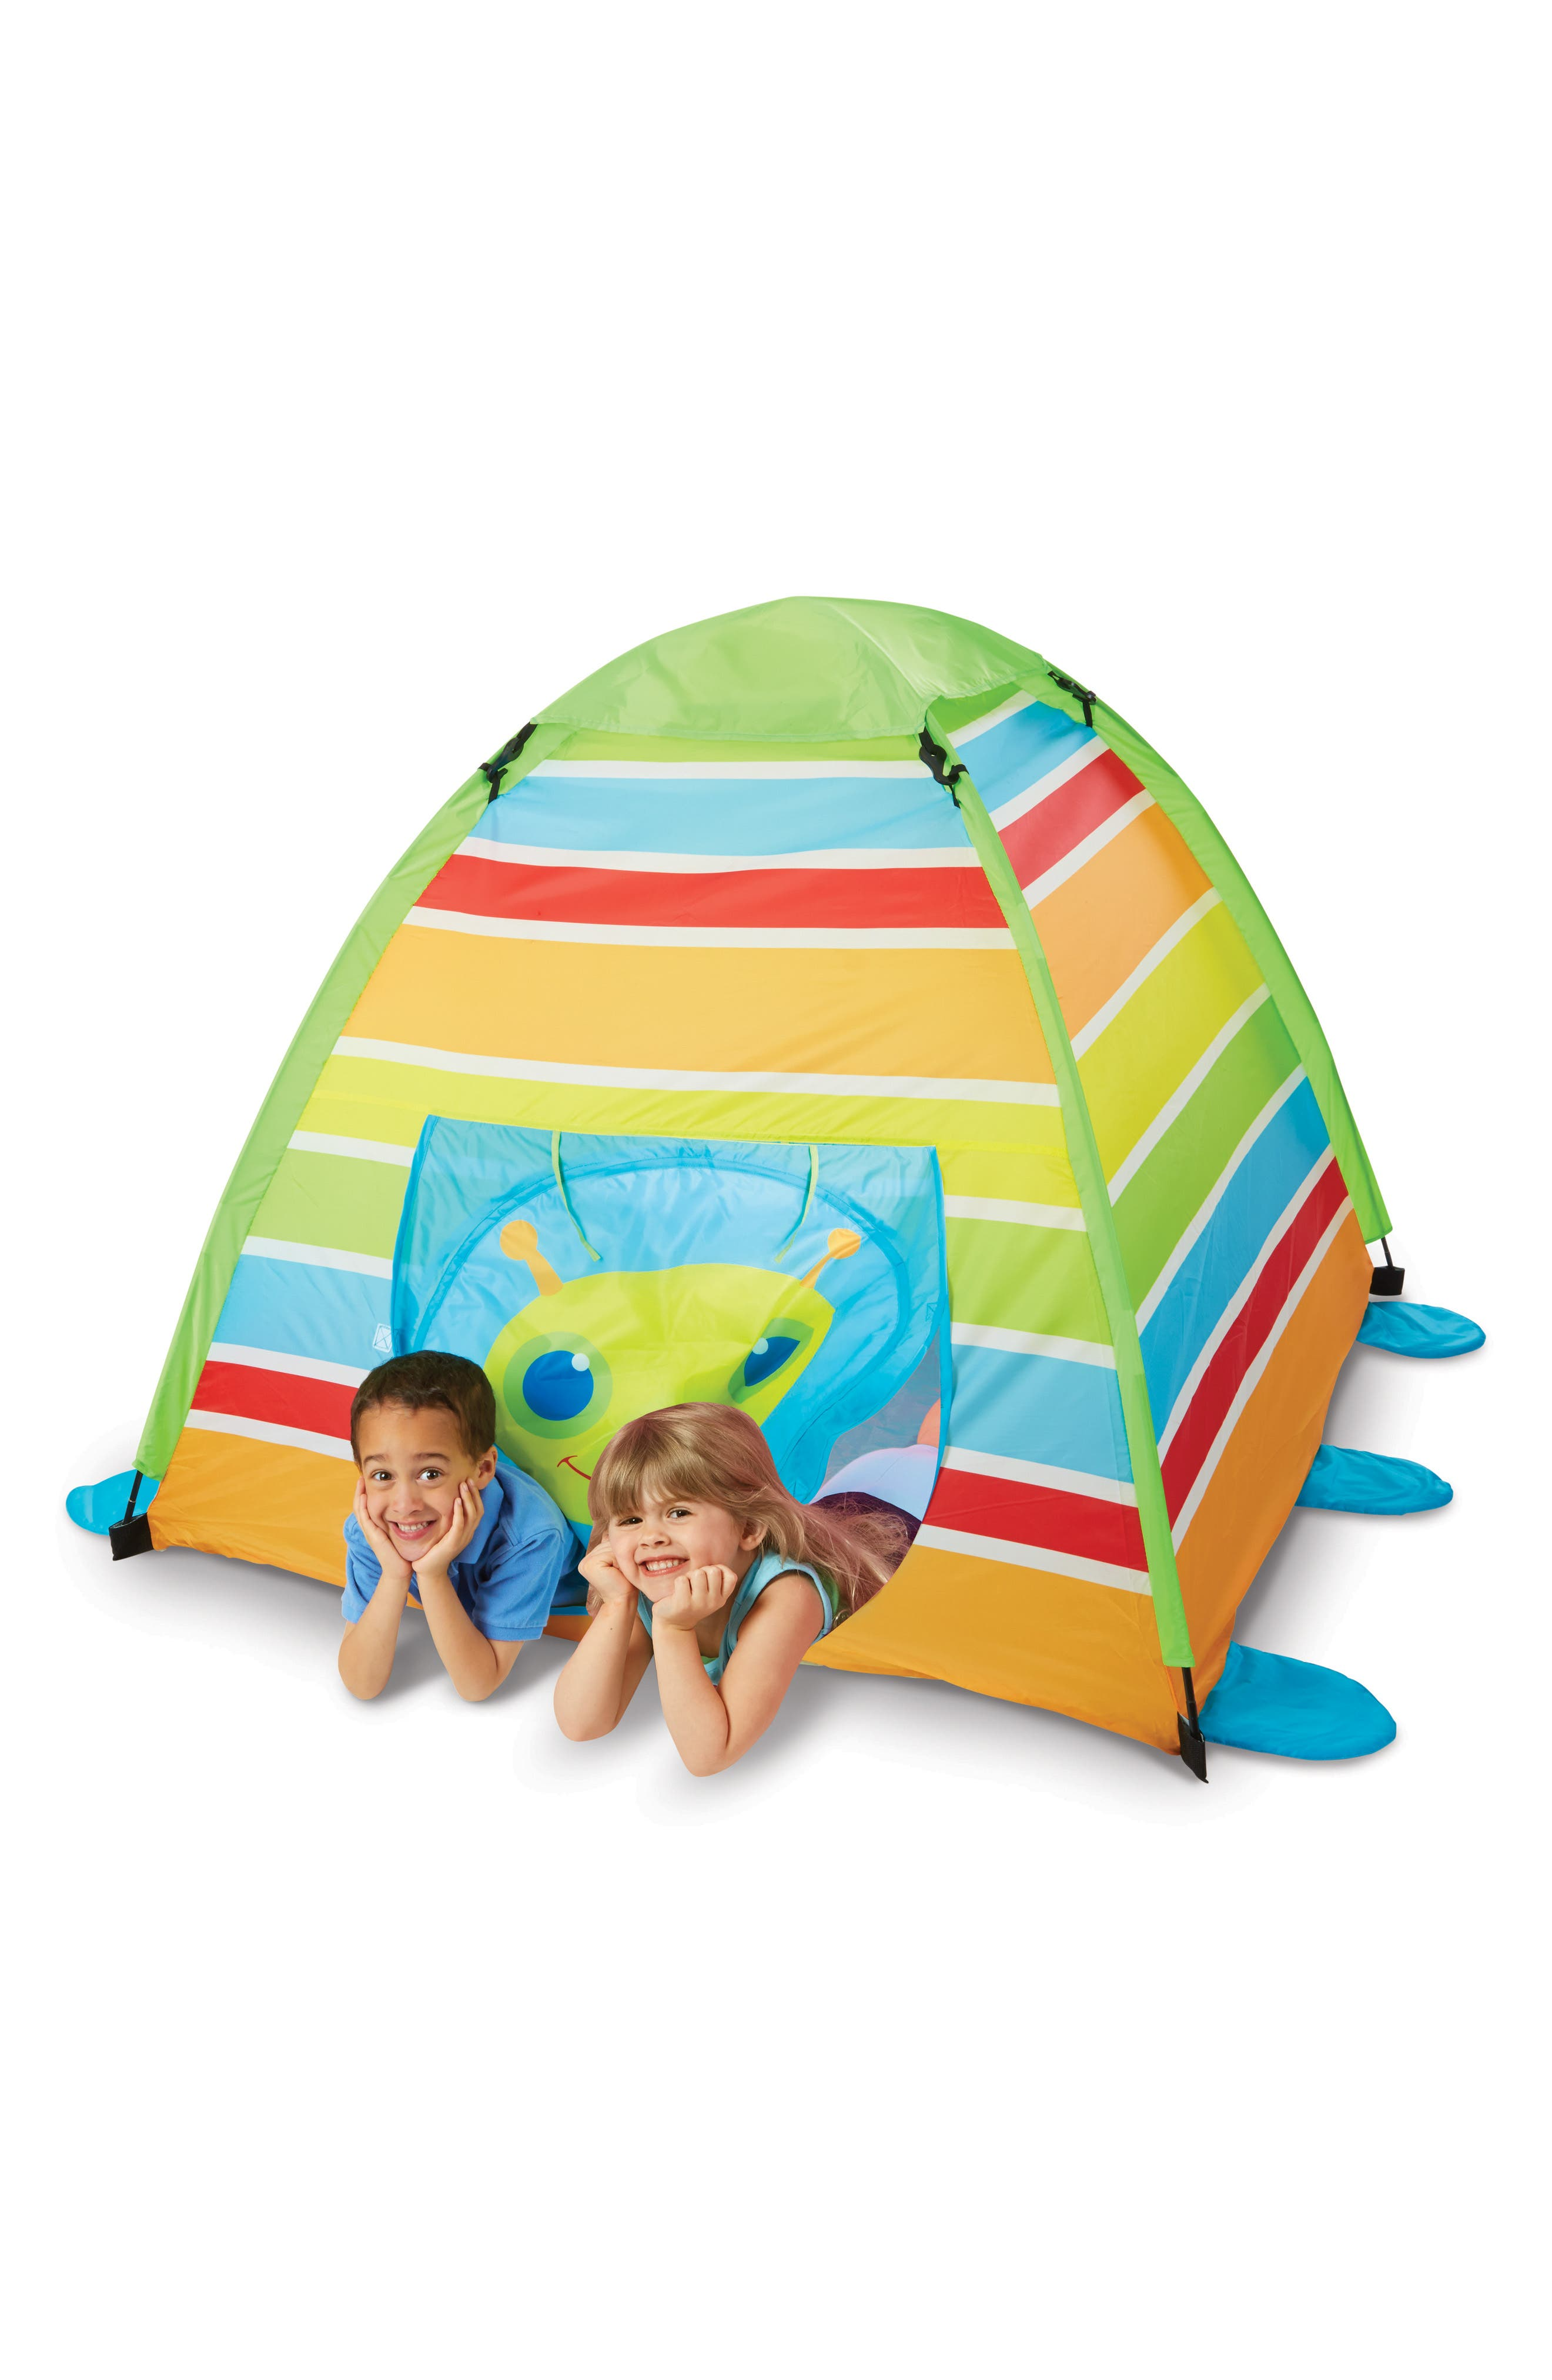 Giddy Buggy Tent,                             Alternate thumbnail 2, color,                             300